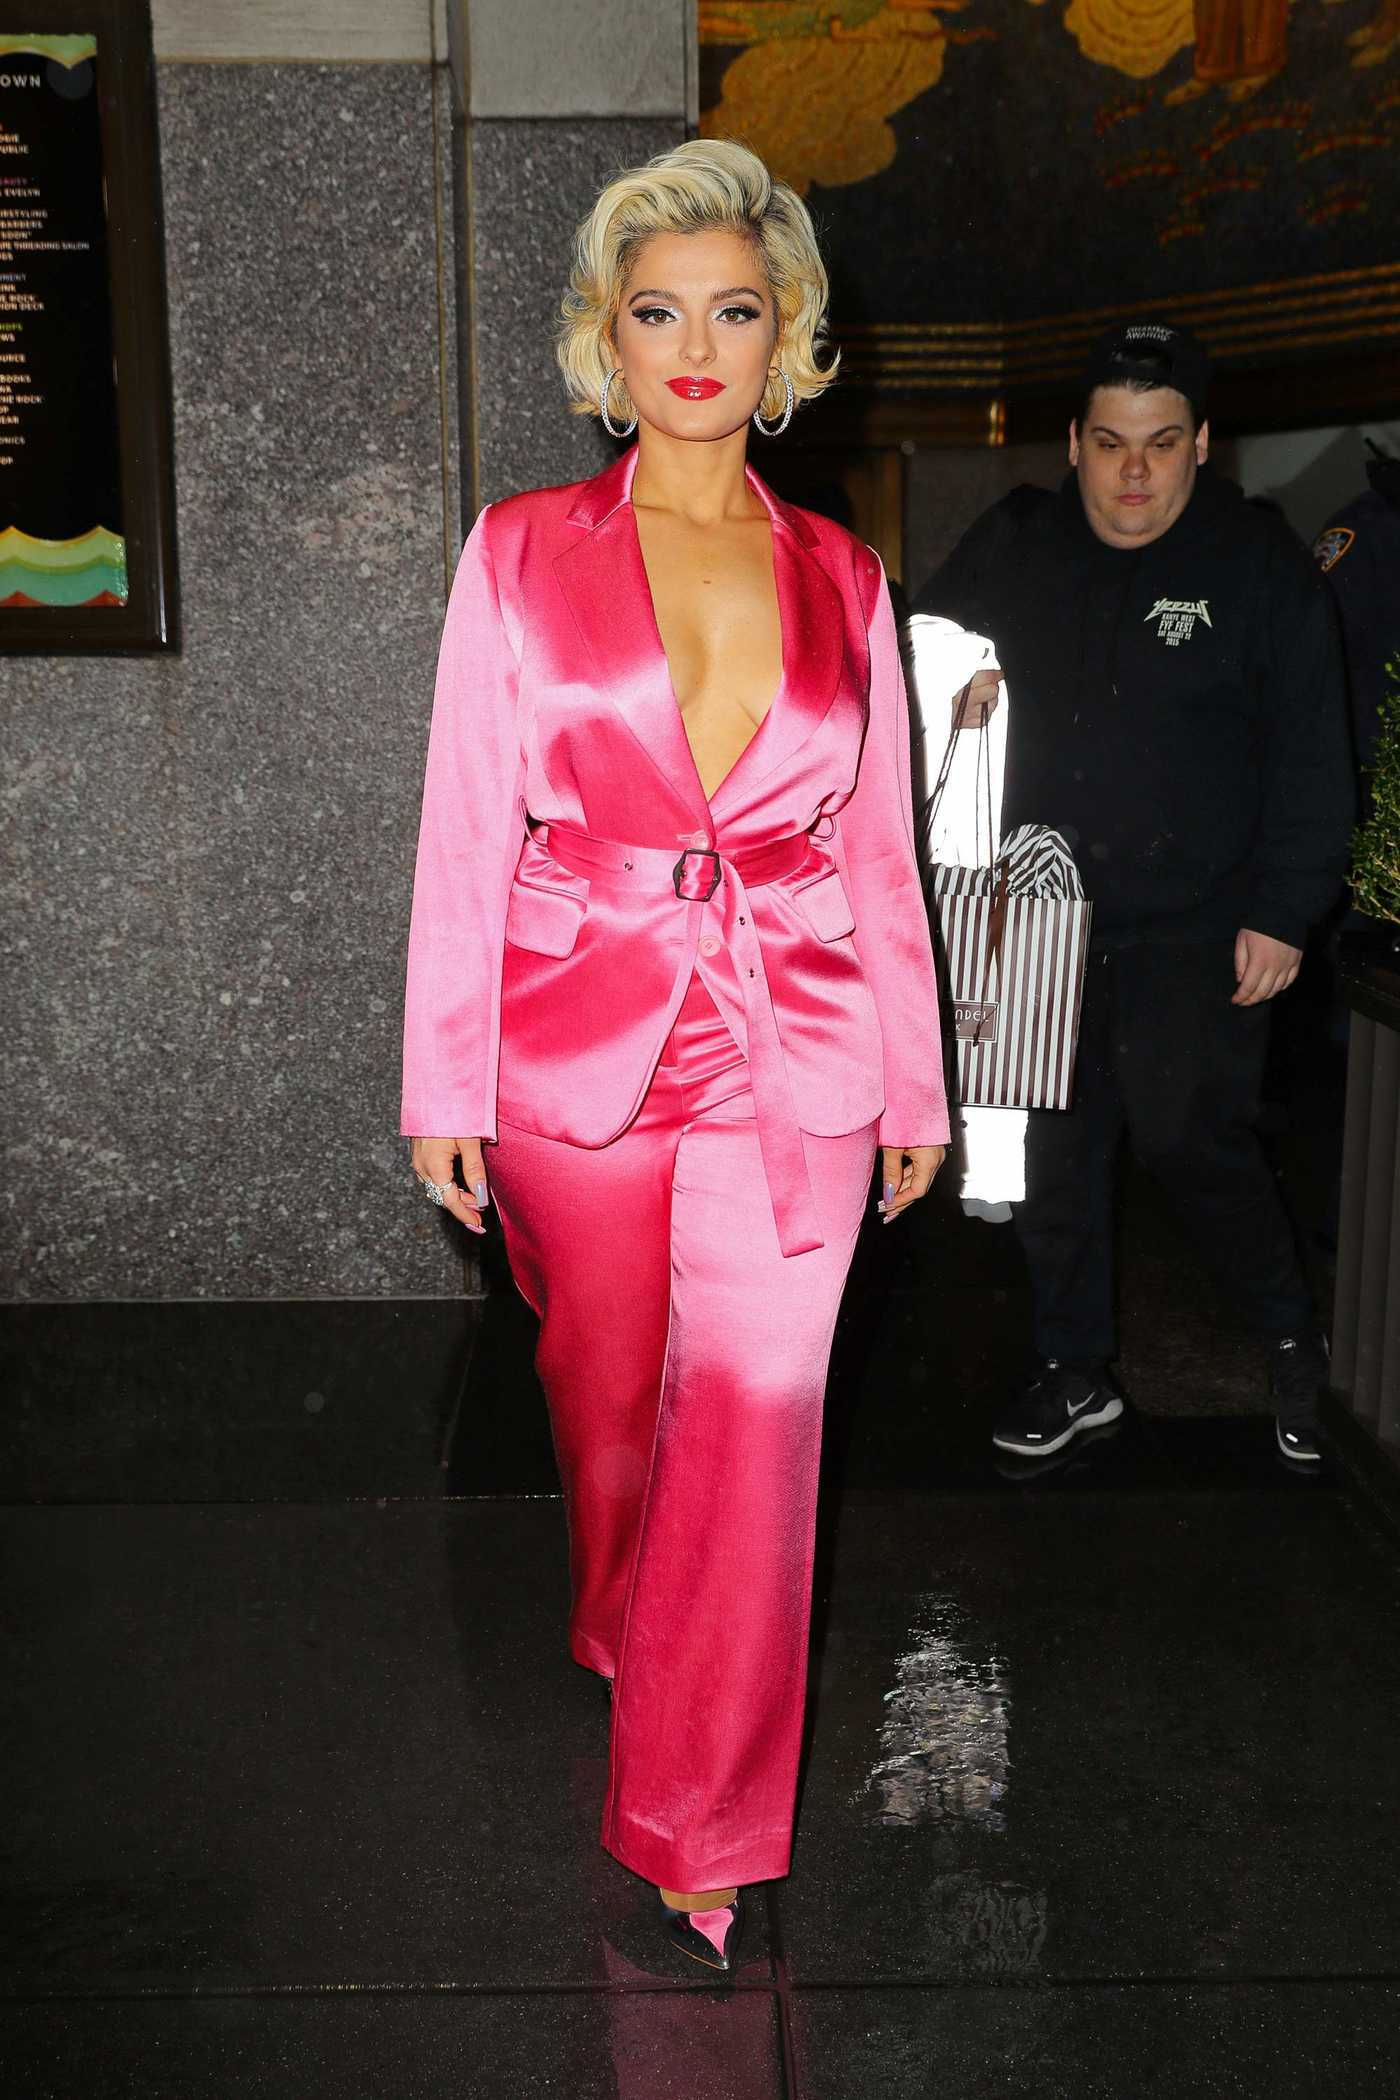 Bebe Rexha in a Pink Suit Leaves The Tonight Show Starring Jimmy Fallon in New York City 12/20/2018